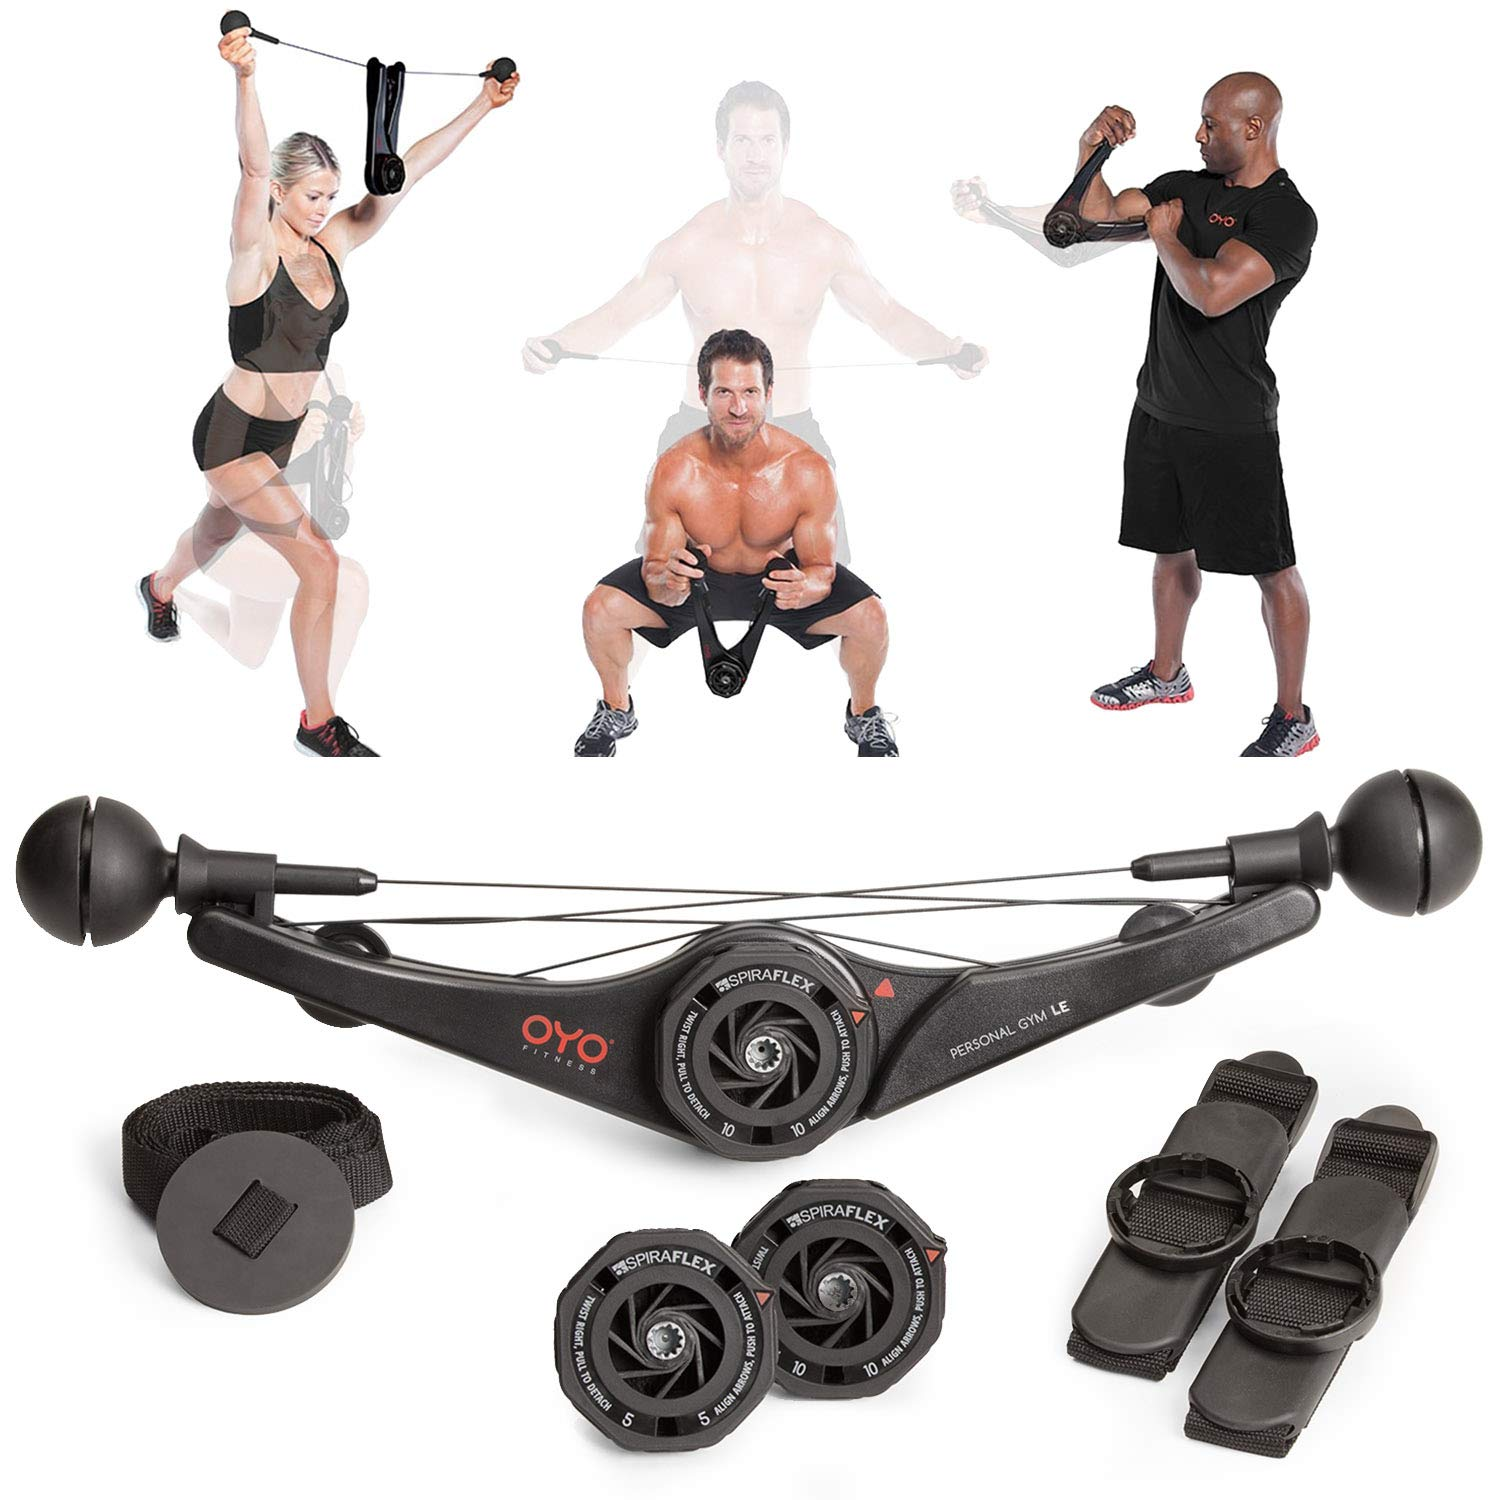 OYO Personal Gym - Full Body Portable Gym for Home